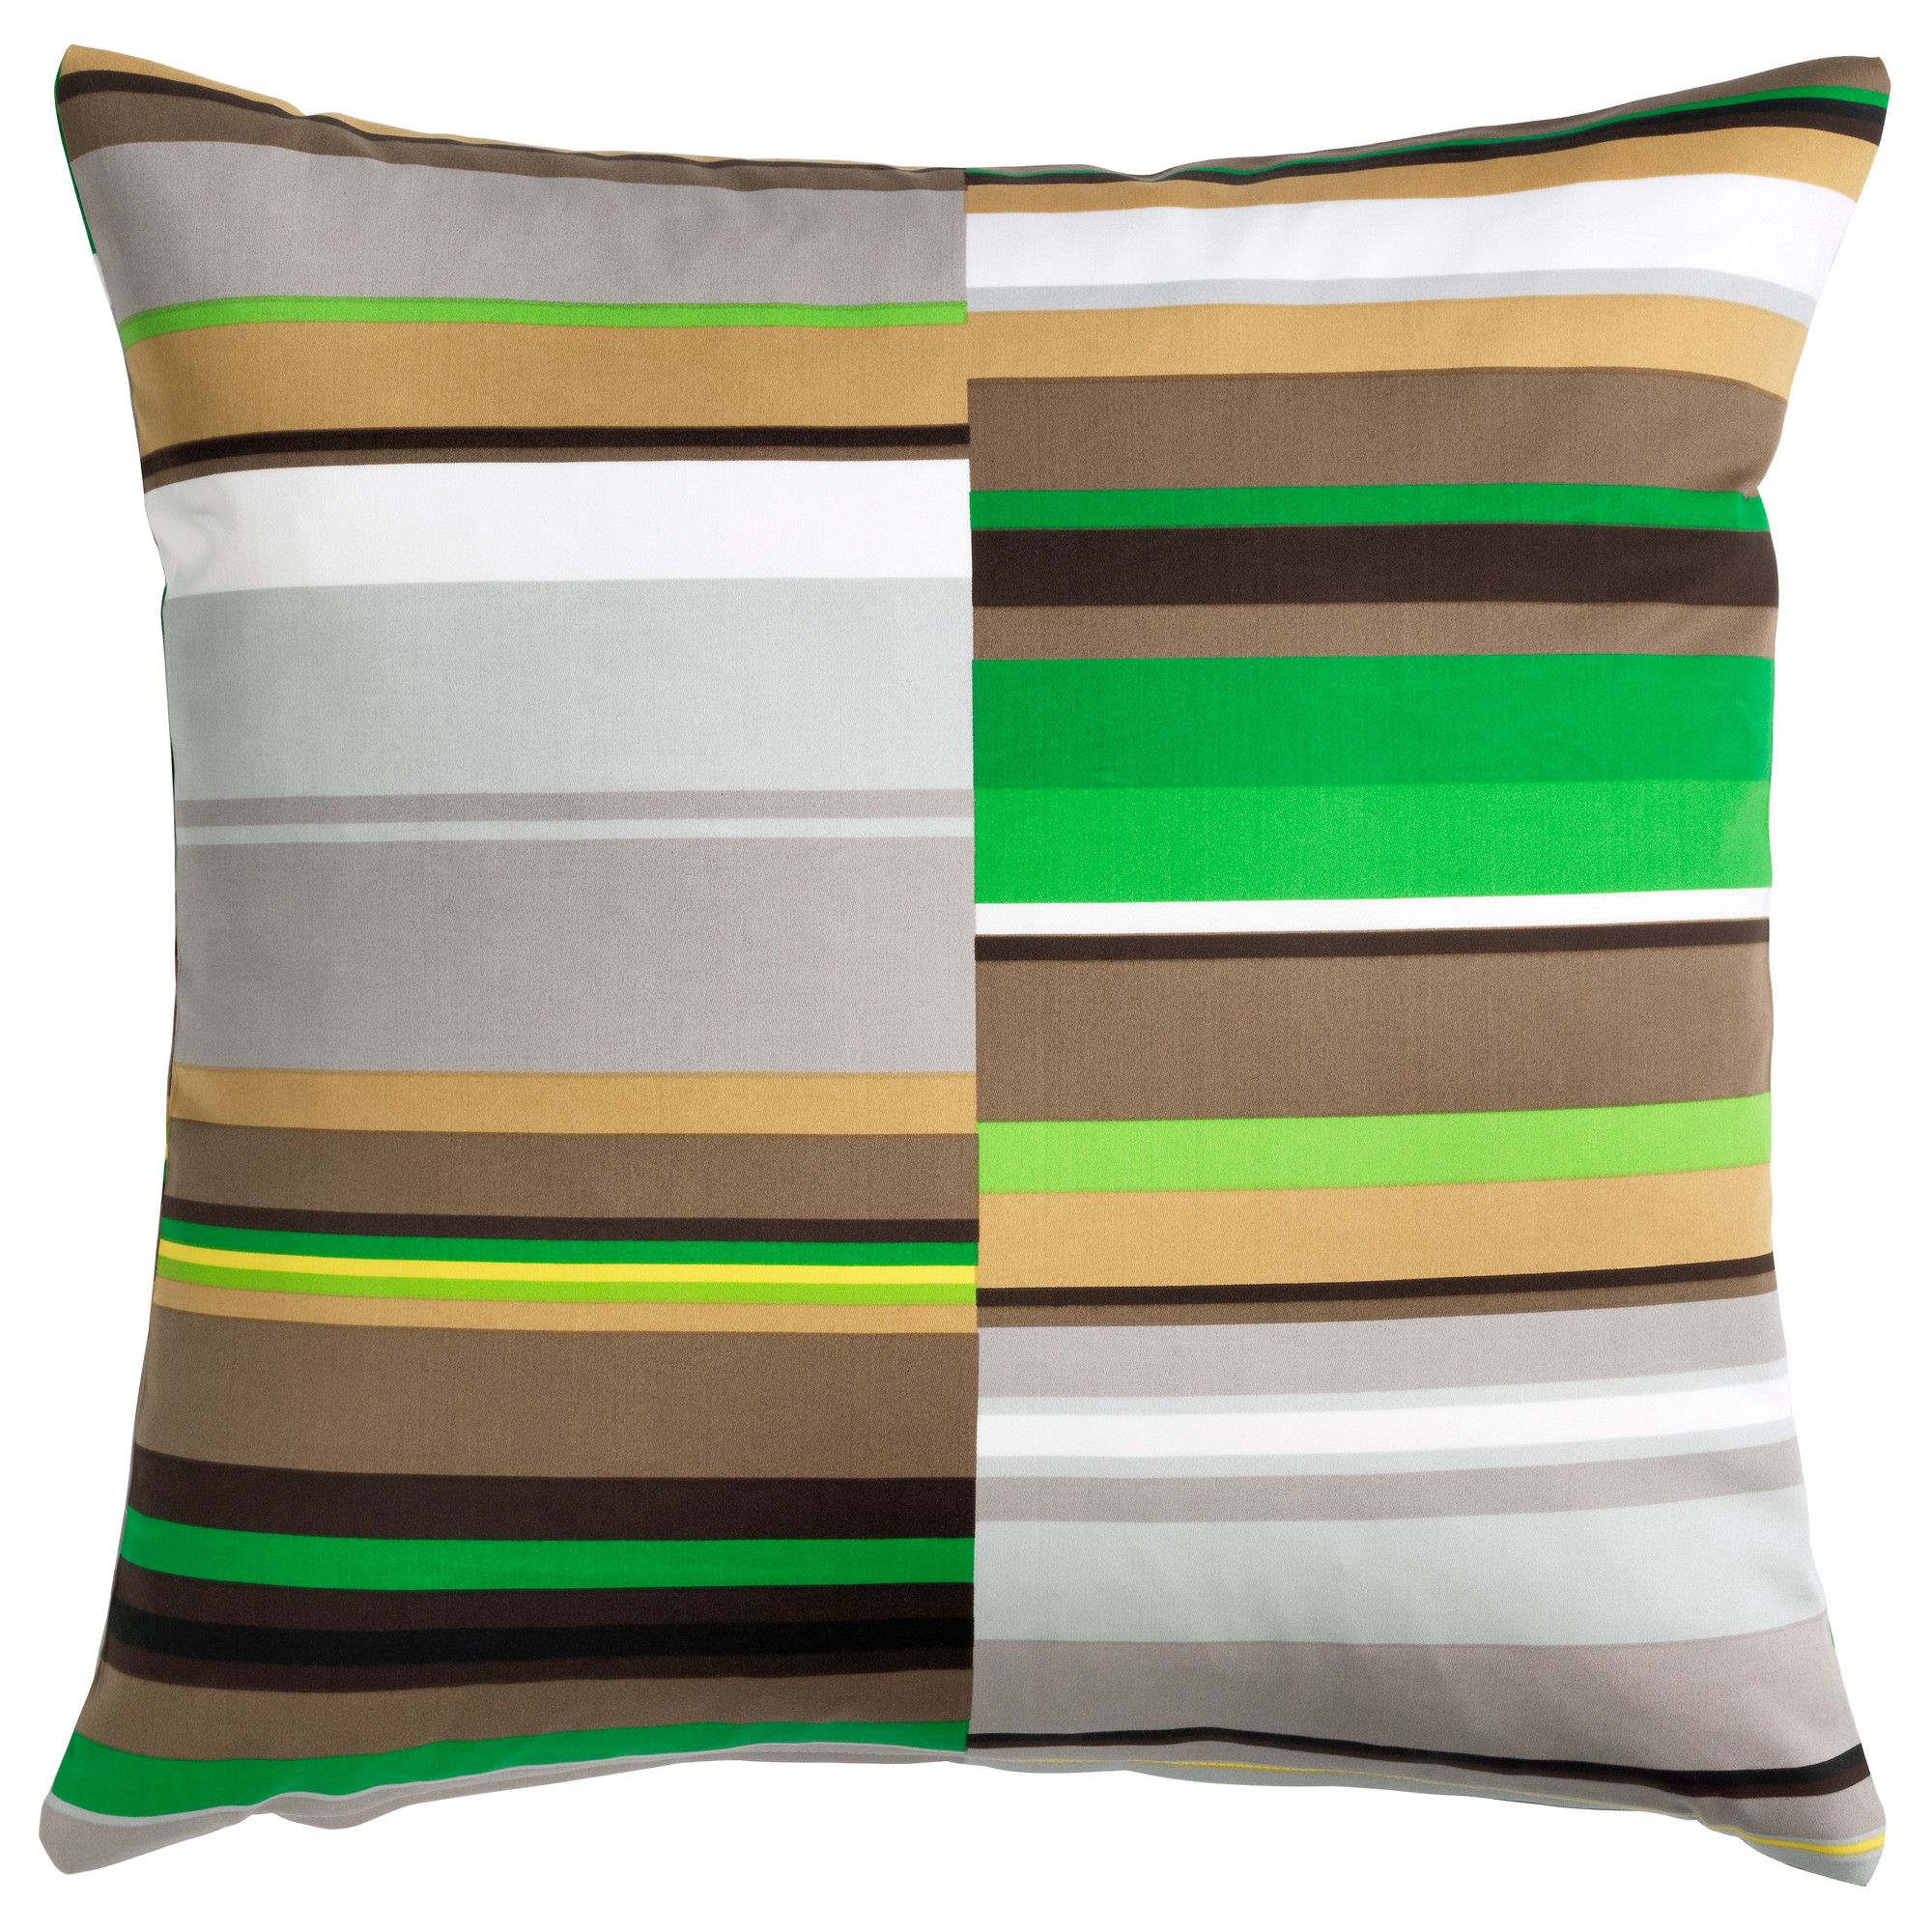 room ikea decor ideas living for home wholesale inserts pillows rugs che decorative covers at with cover exciting and throw cozy walmart cushion i decorating daybed sisal pillow papasan interior trundle couch starburst